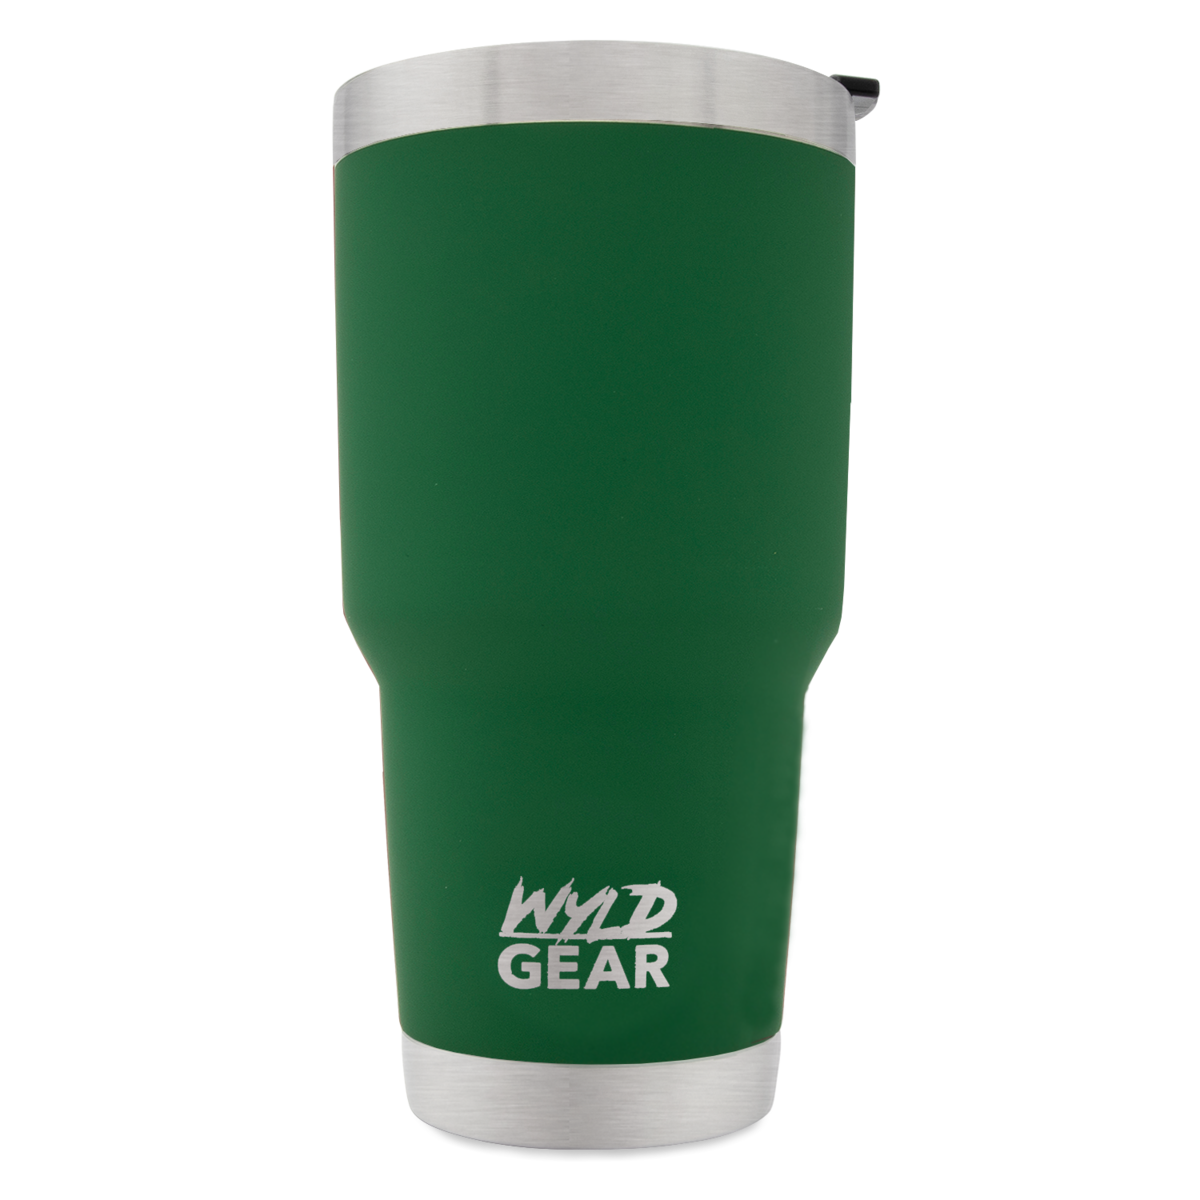 Wyld Gear 30 oz Insulated Stainless Steel Tumbler